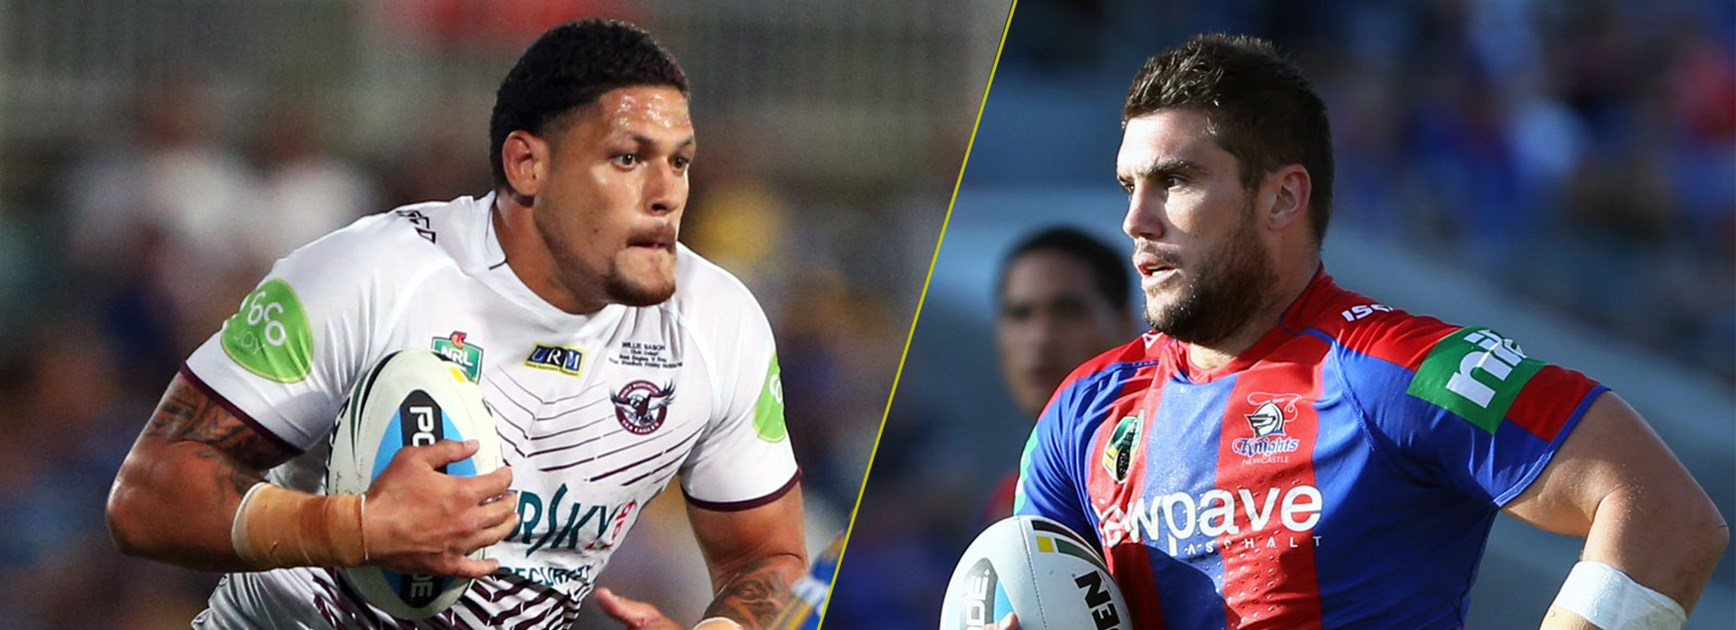 Willie Mason goes up against his former club the Knights and in-form prop Kade Snoden this weekend.